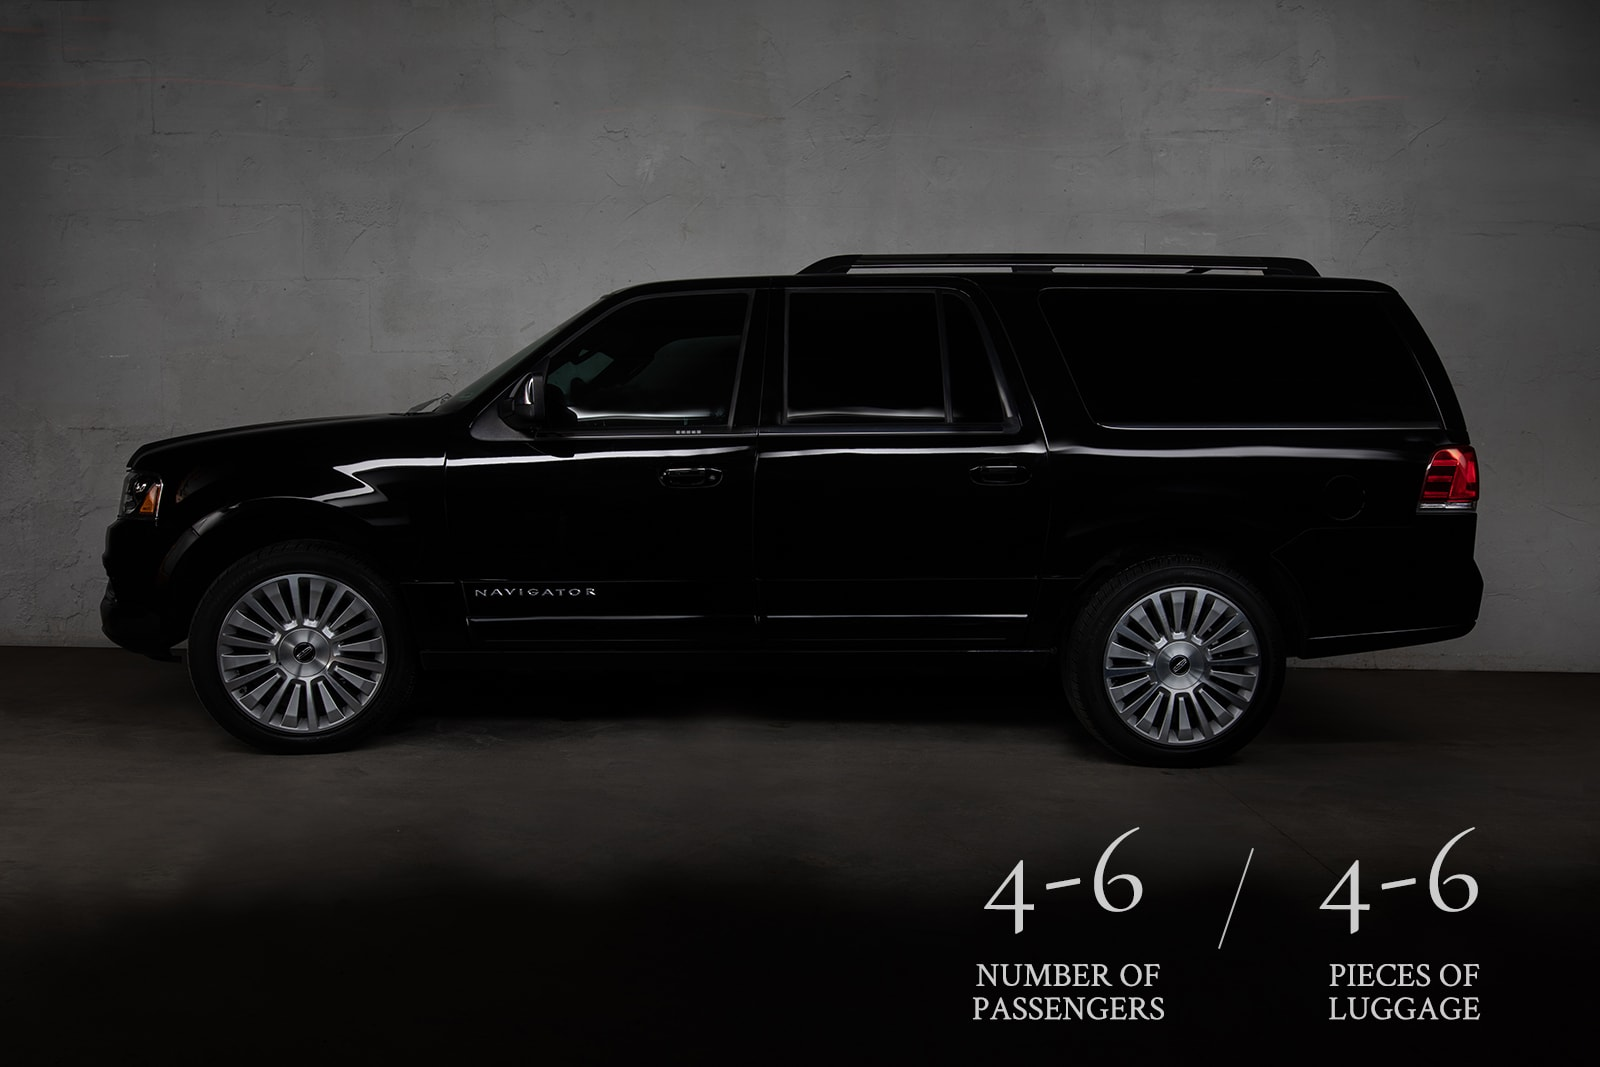 Exterior of the Lincoln Navigator, one fo the luxury vehicles in Prestige's limo rental fleet.